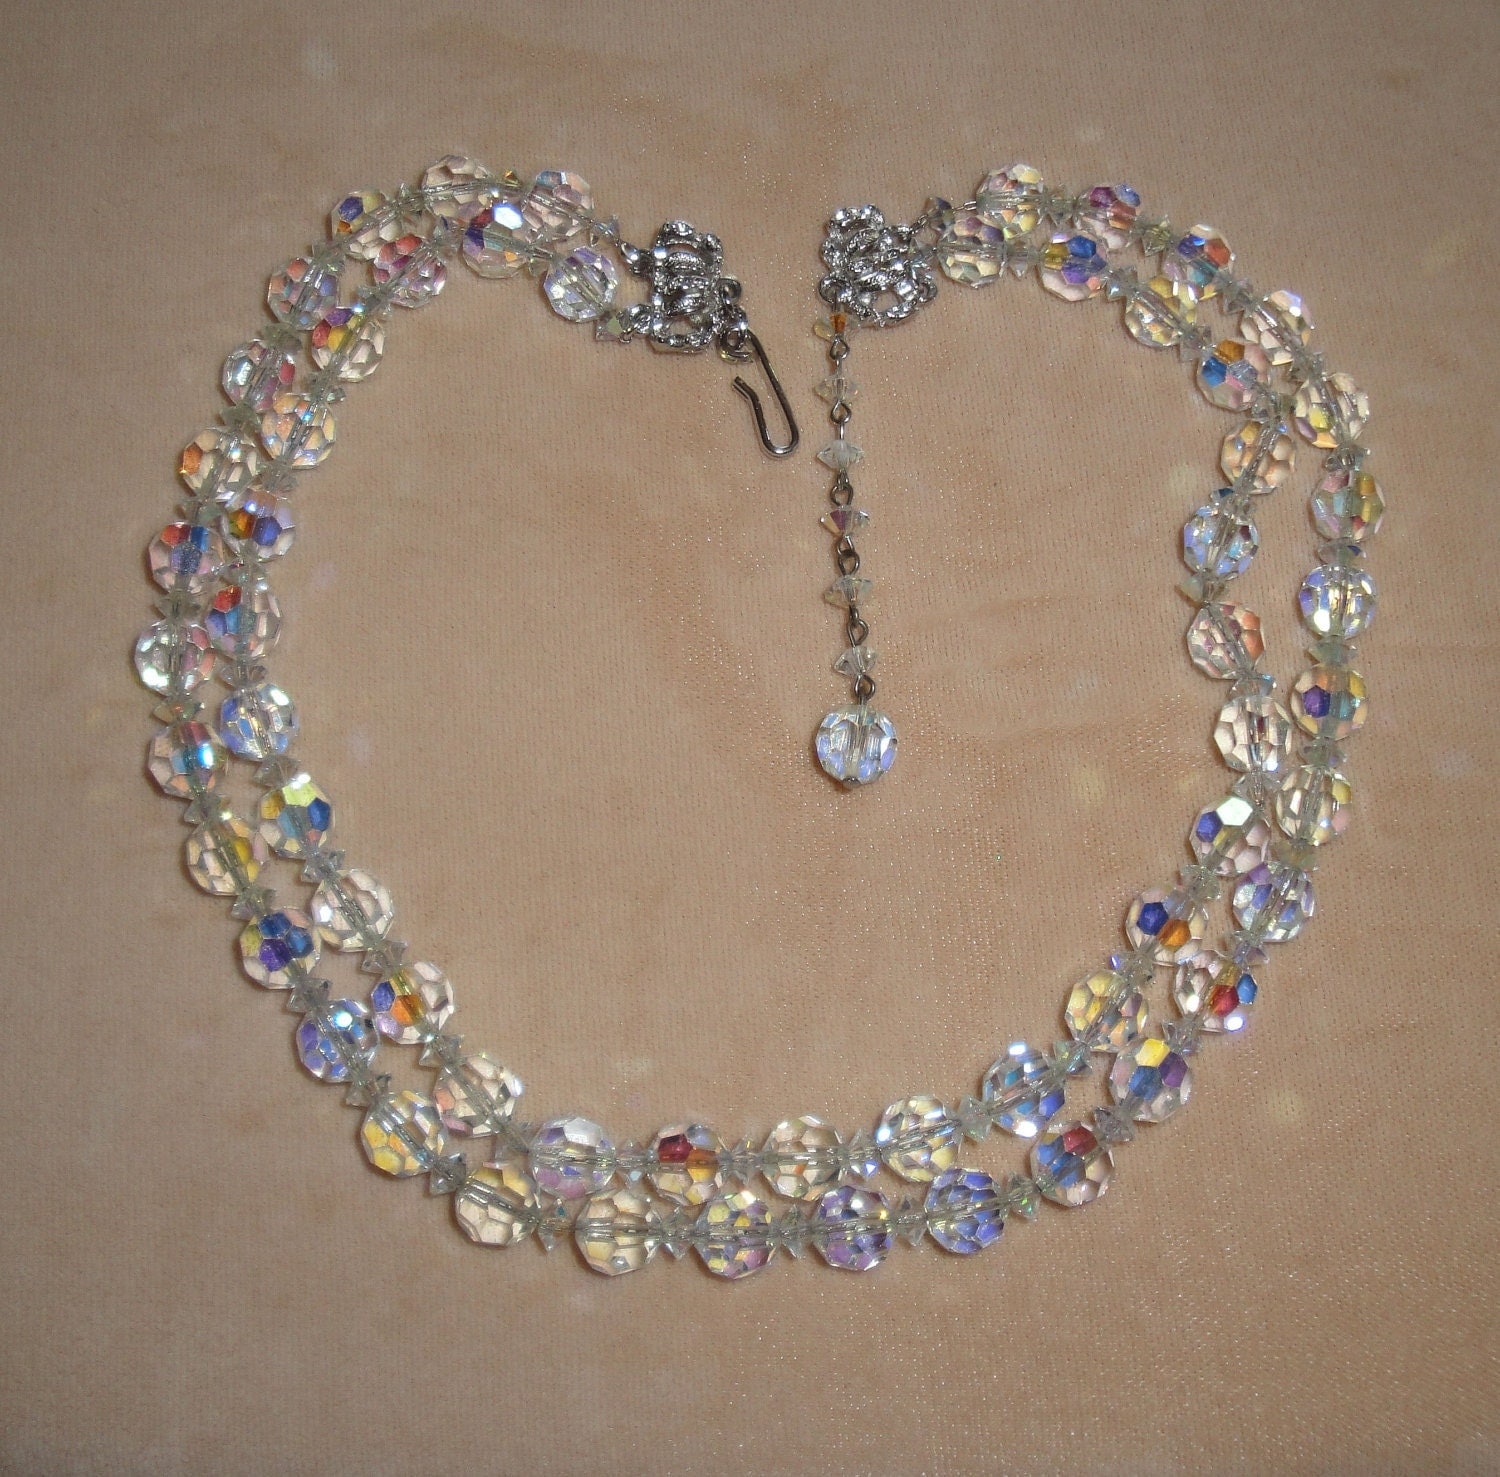 Vintage Necklace Hobe 1950s Era Clear Crystal By Mppdesigns